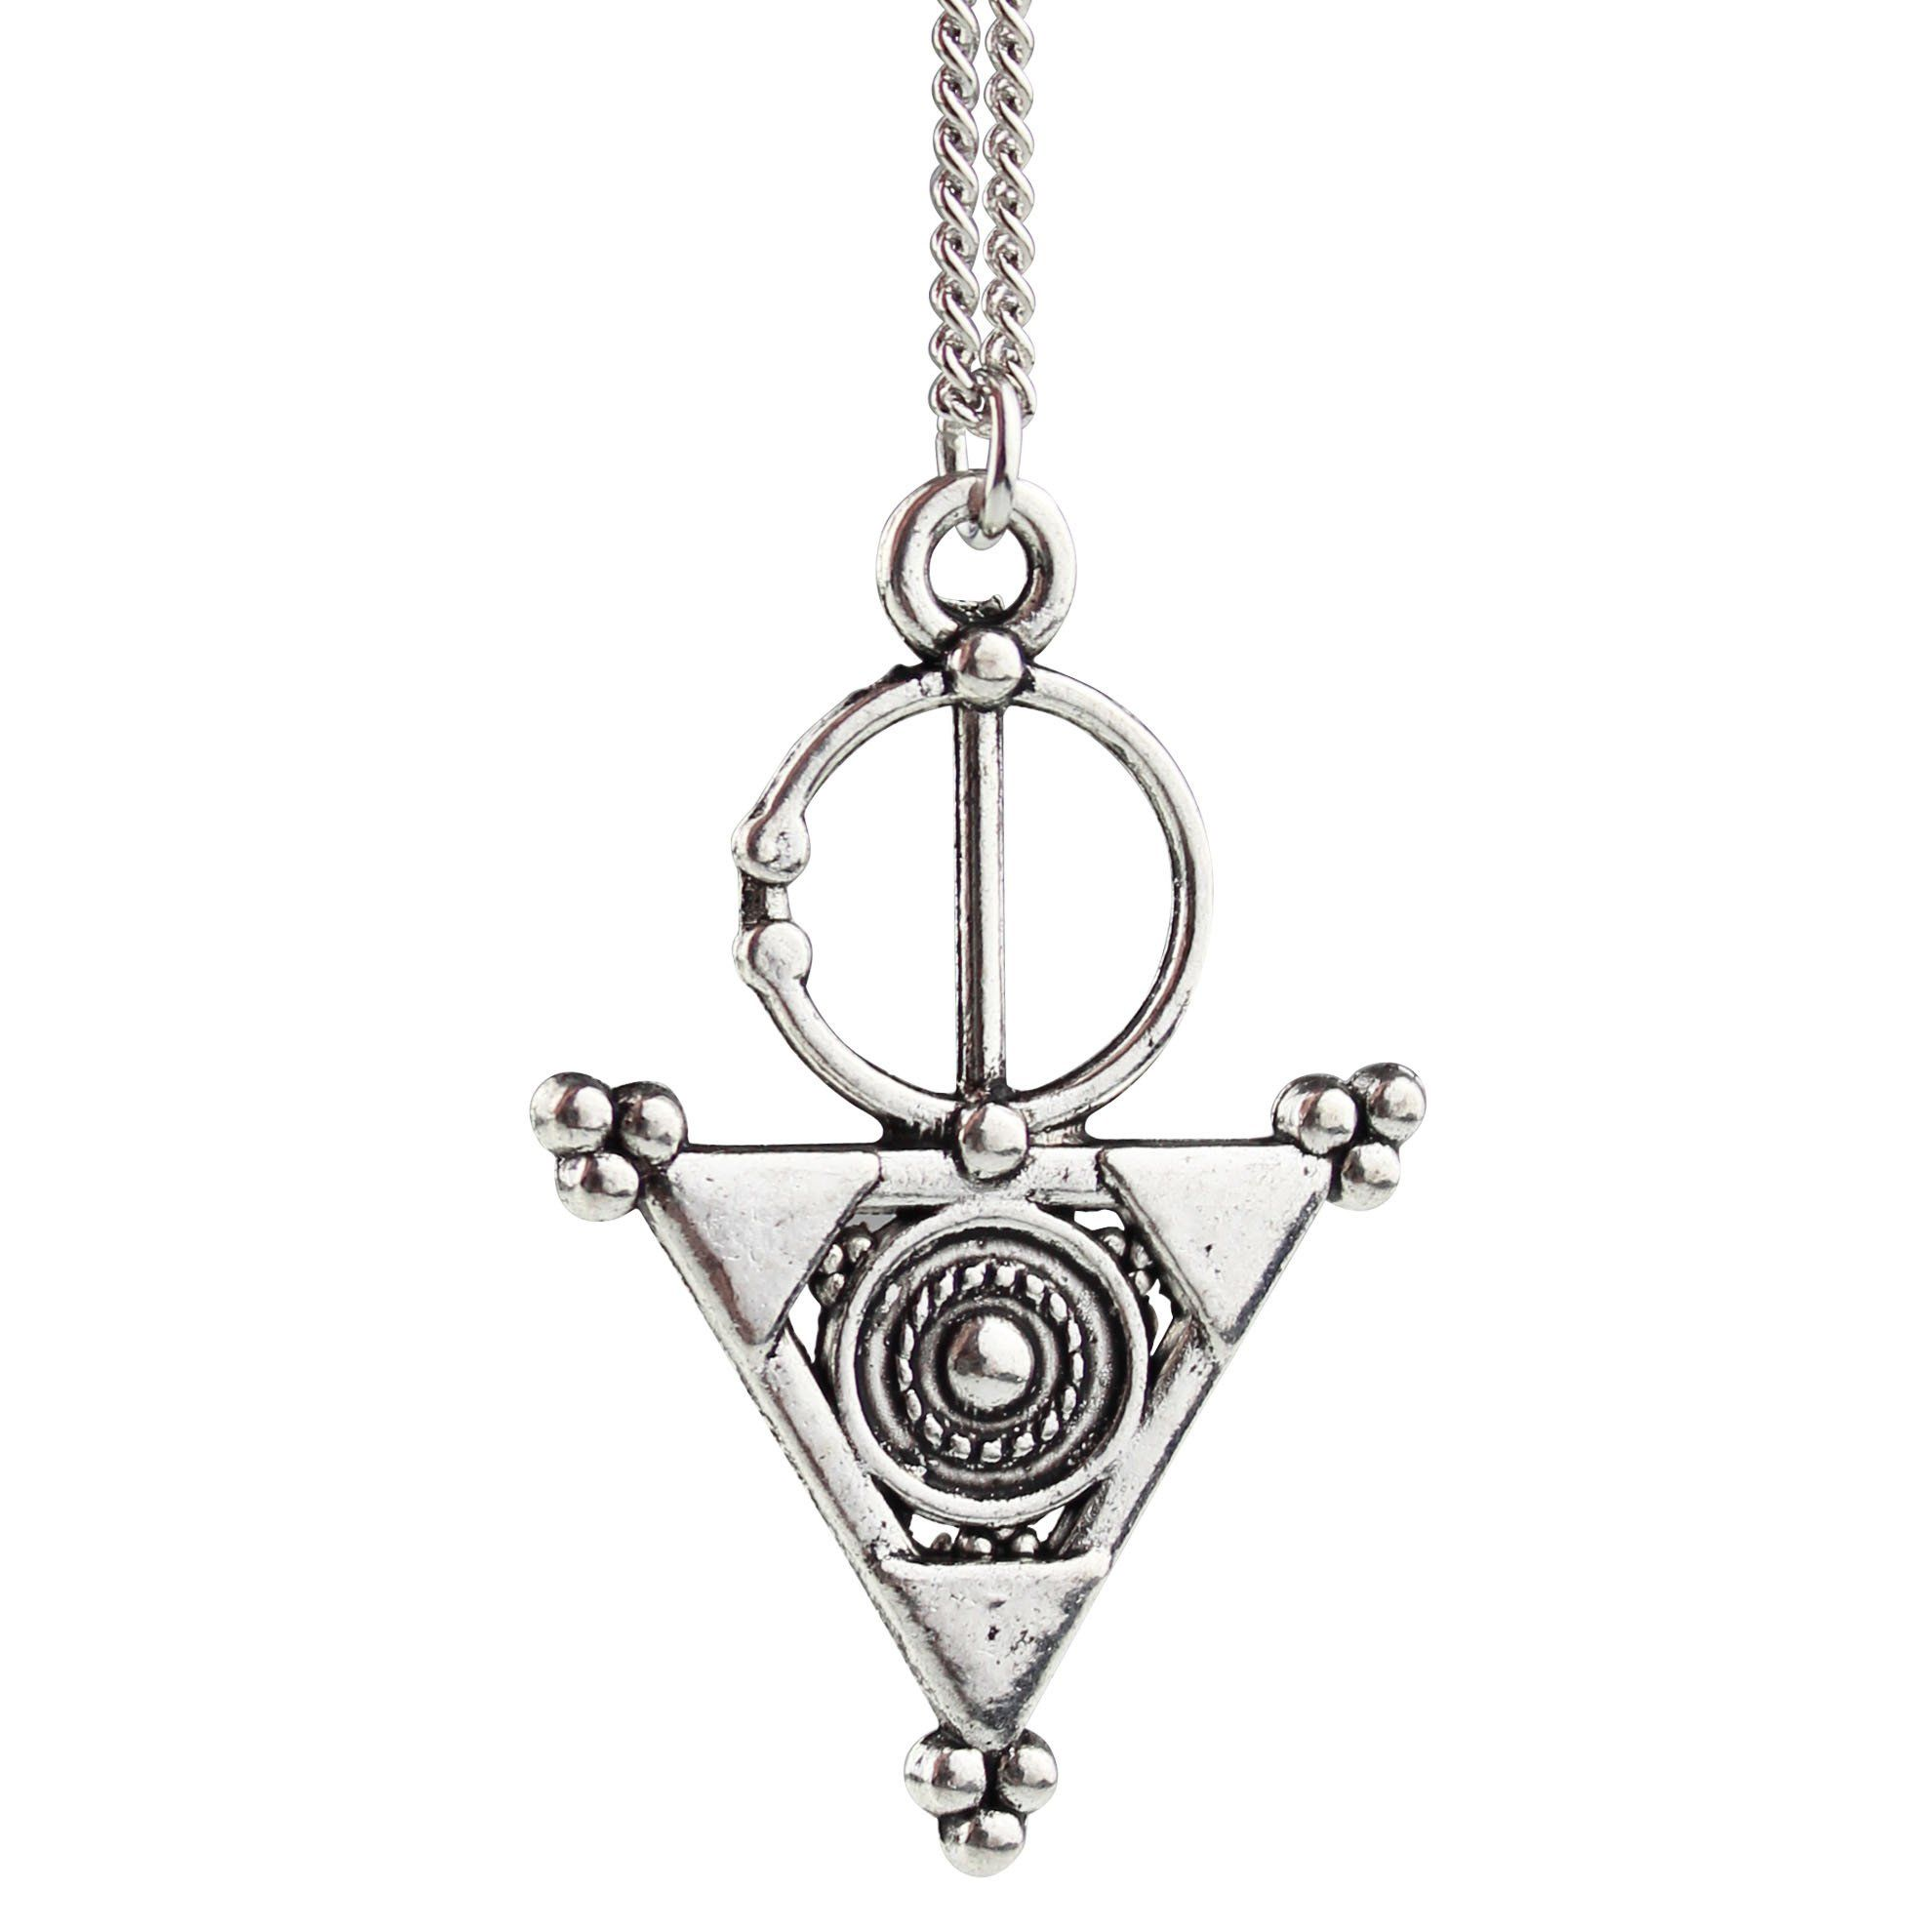 ❧ A Little Sacred Geometry... ❧ In store now ☞ shopdixi.com ❧ shop dixi // dixi // boho // bohemian // jewelry // jewellery // grunge // goth // hippie // hipster // gothic // astrology // esoteric // constellation // horoscope // witchy // necklace